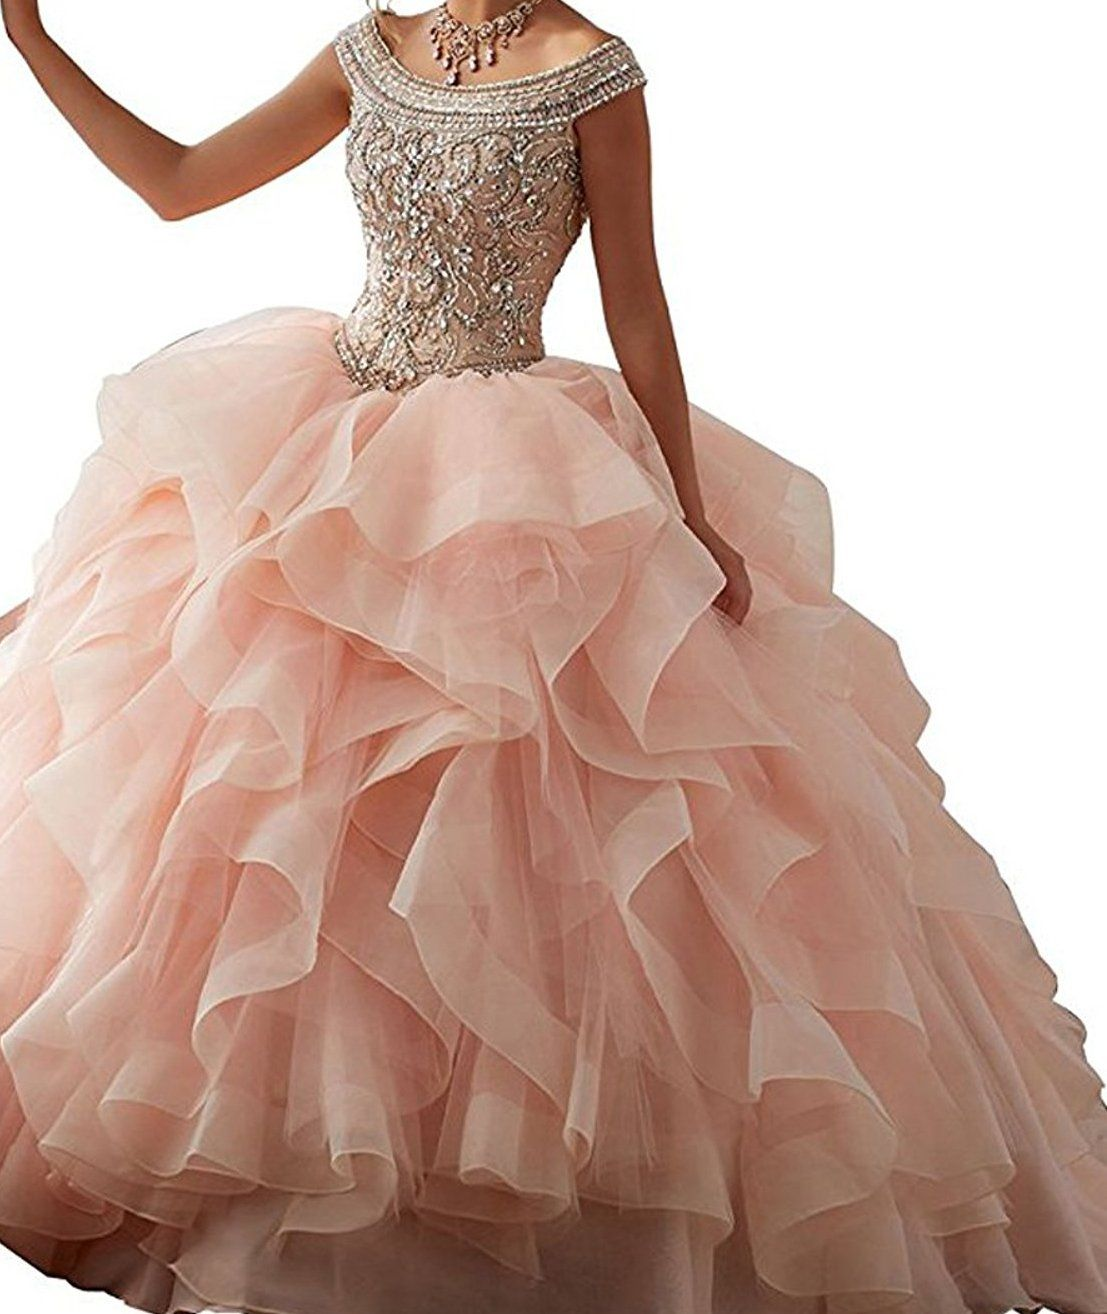 Bessdress Shoulder Sweet 16 Prom Dresses Beaded Ruffles Evening Party Ball Gown Bd282 Want Additional Info Click On The Ball Gowns Formal Ball Gown Gowns [ 1314 x 1107 Pixel ]